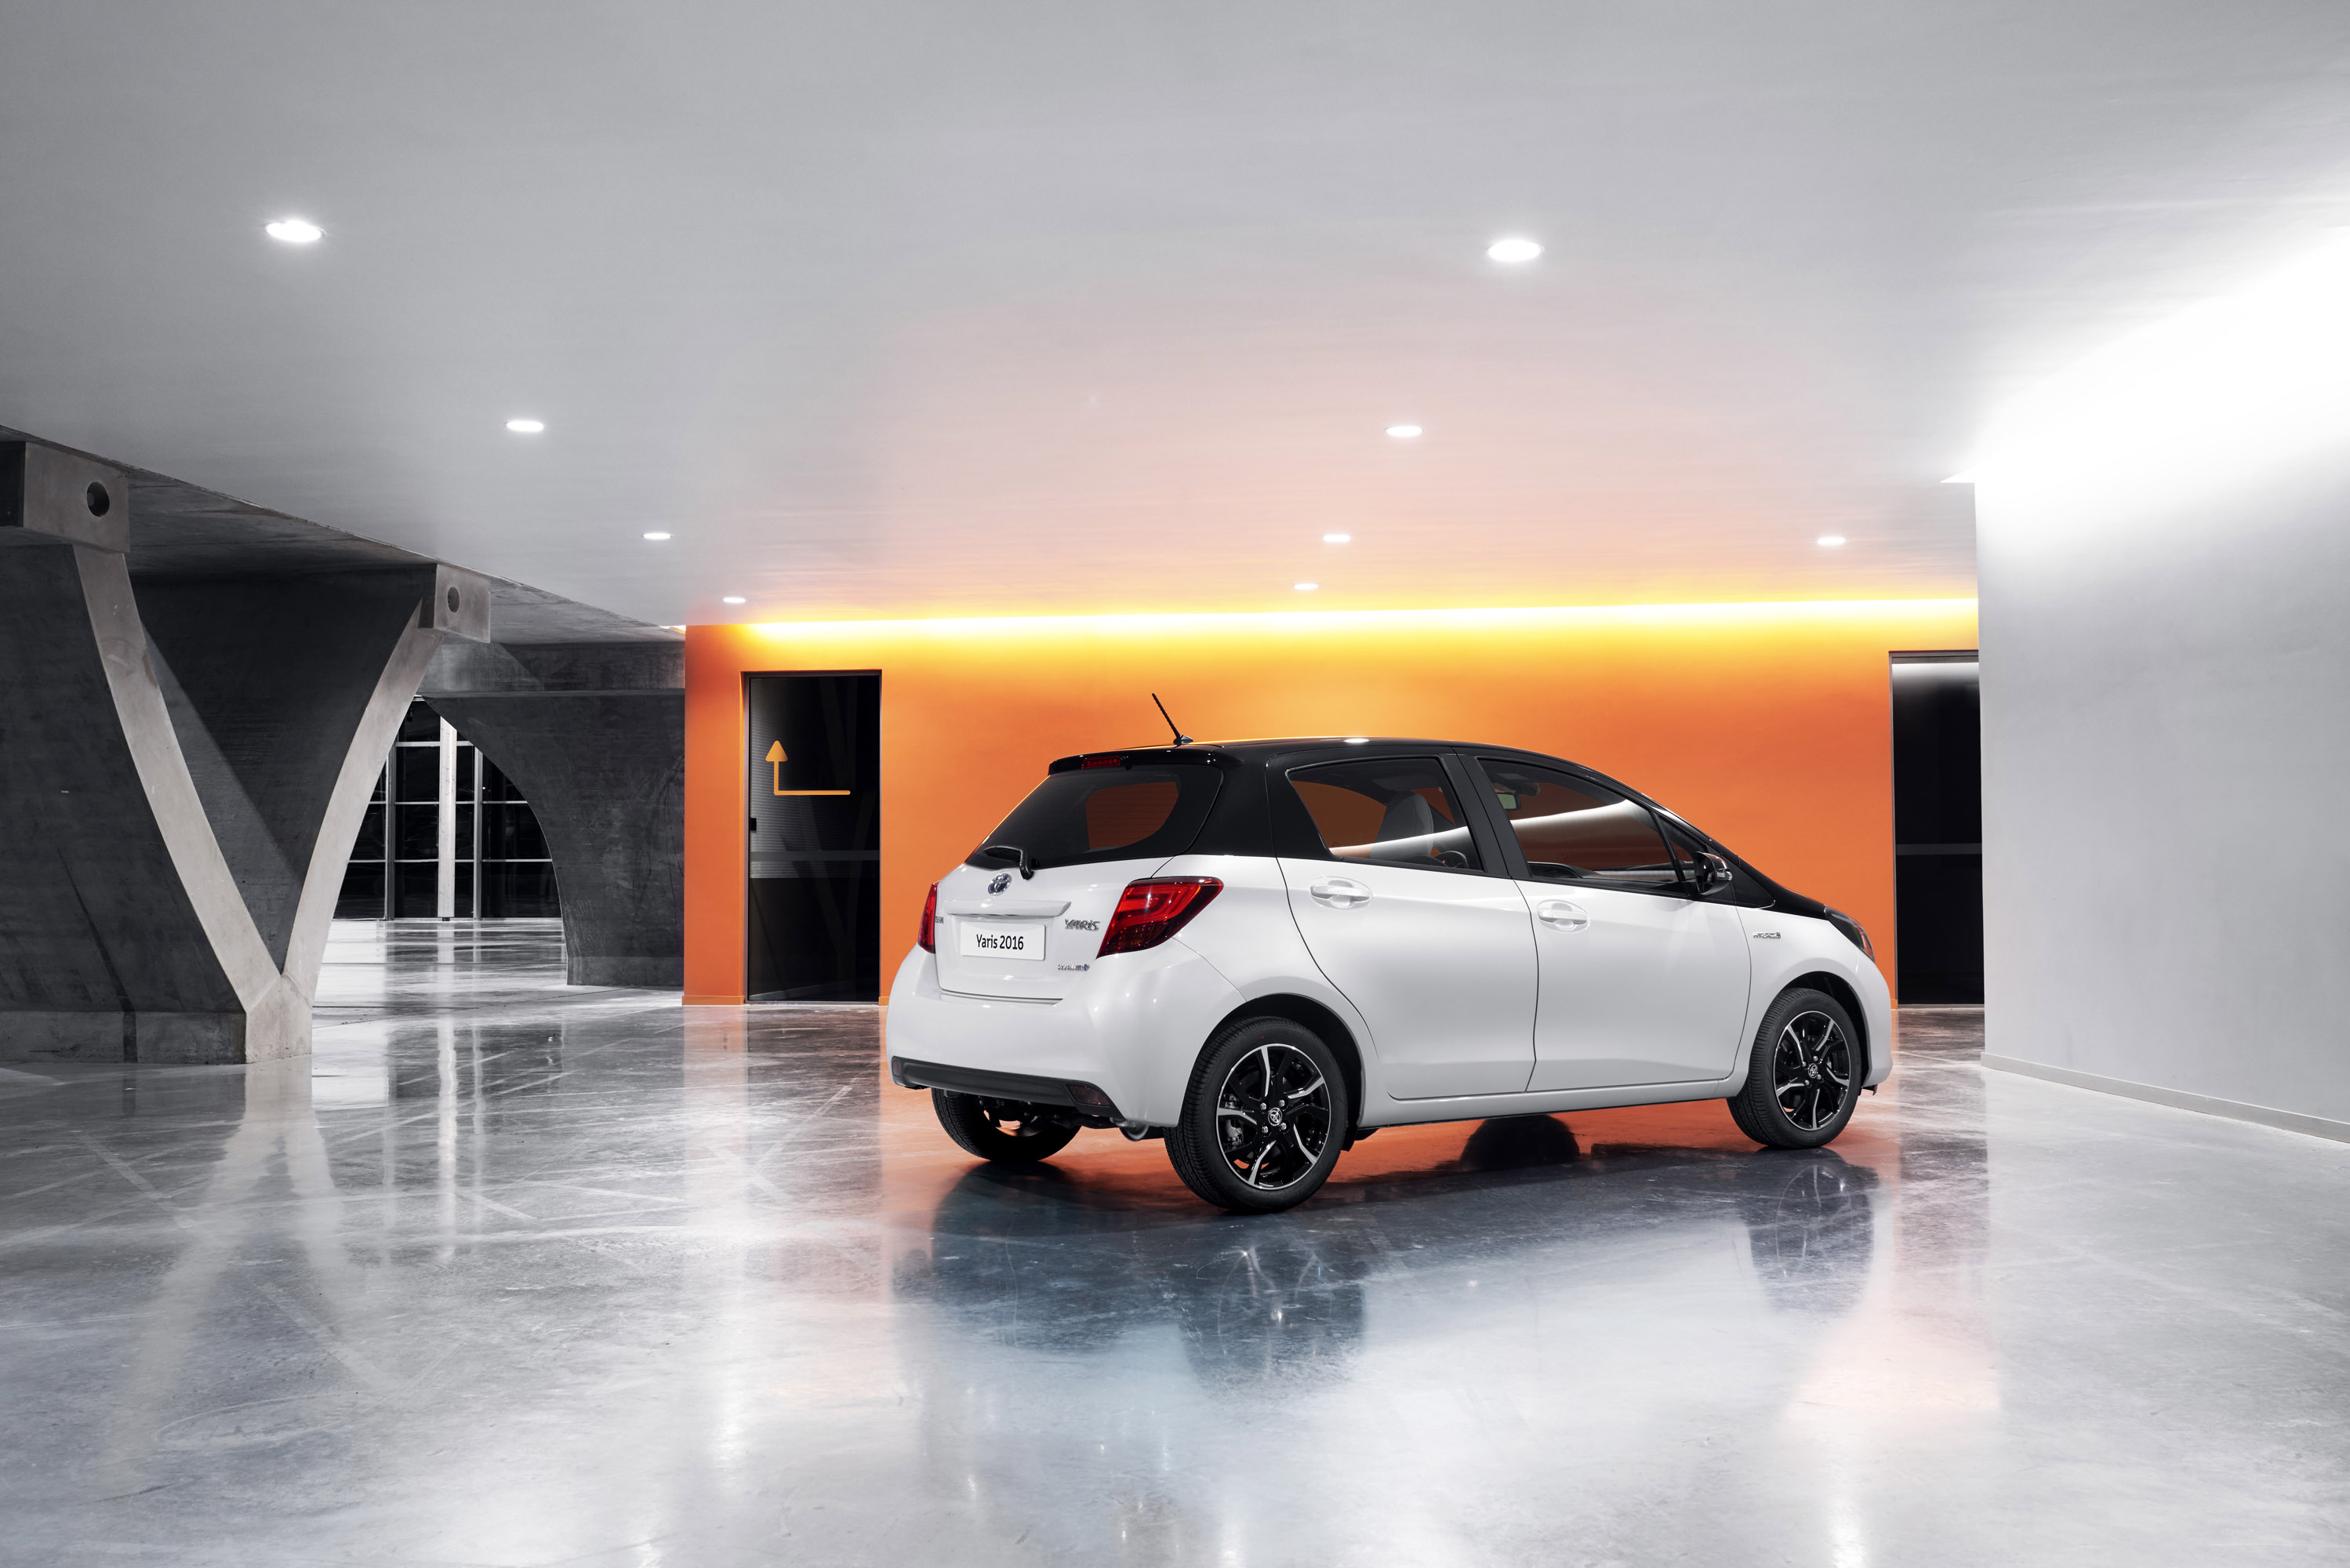 Toyota Gears 2016 Yaris With New Design Pack